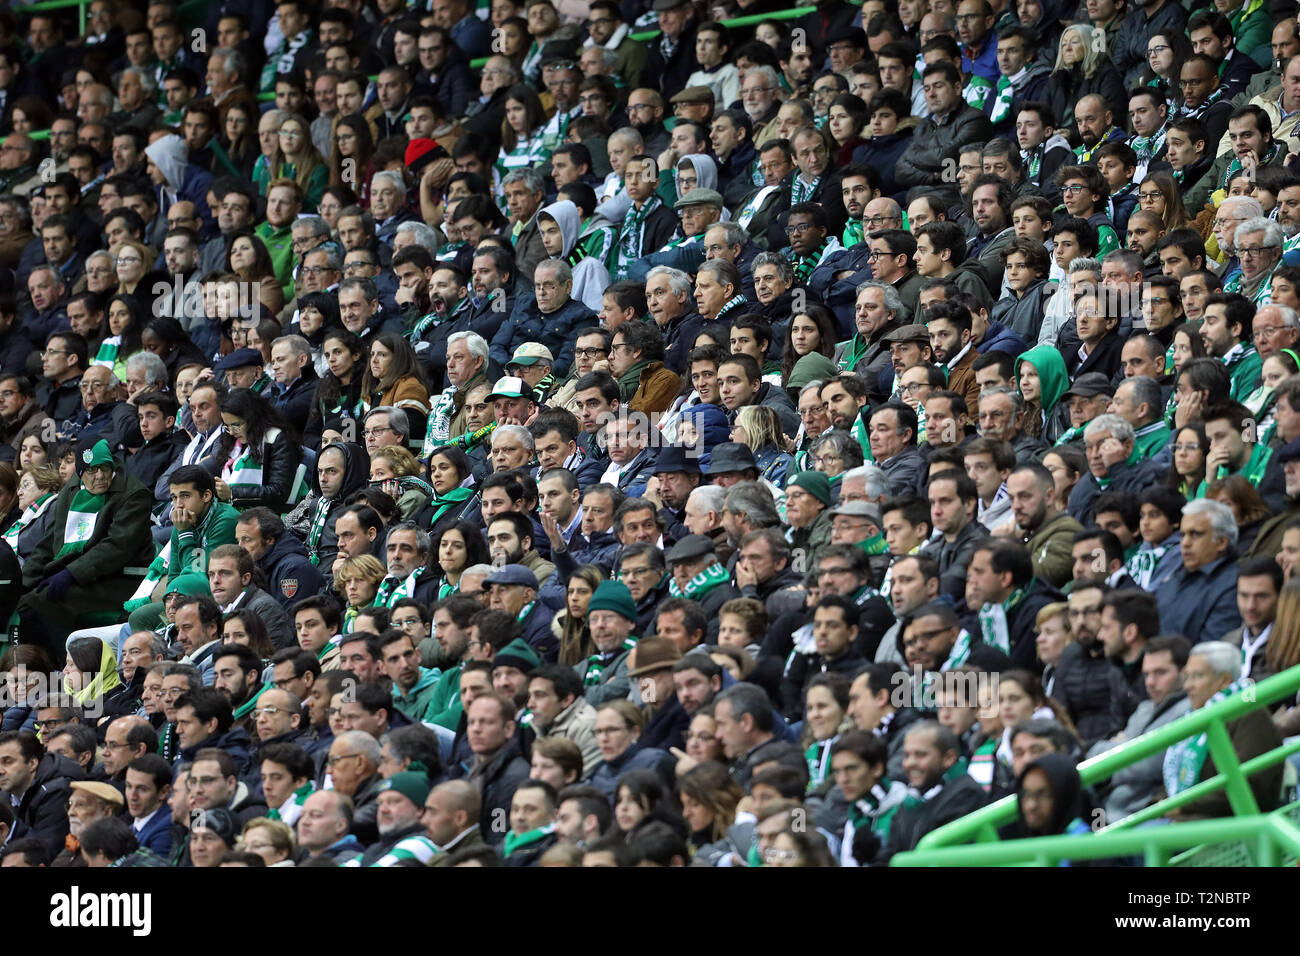 Lisbon, Portugal. 03rd Apr, 2019. Sporting CP supporters during the Cup of Portugal Placard 2018/2019, 2nd hand - final half football match between Sporting CP vs SL Benfica. (Final score: Sporting CP 1 - 0 SL Benfica) Credit: SOPA Images Limited/Alamy Live News - Stock Image